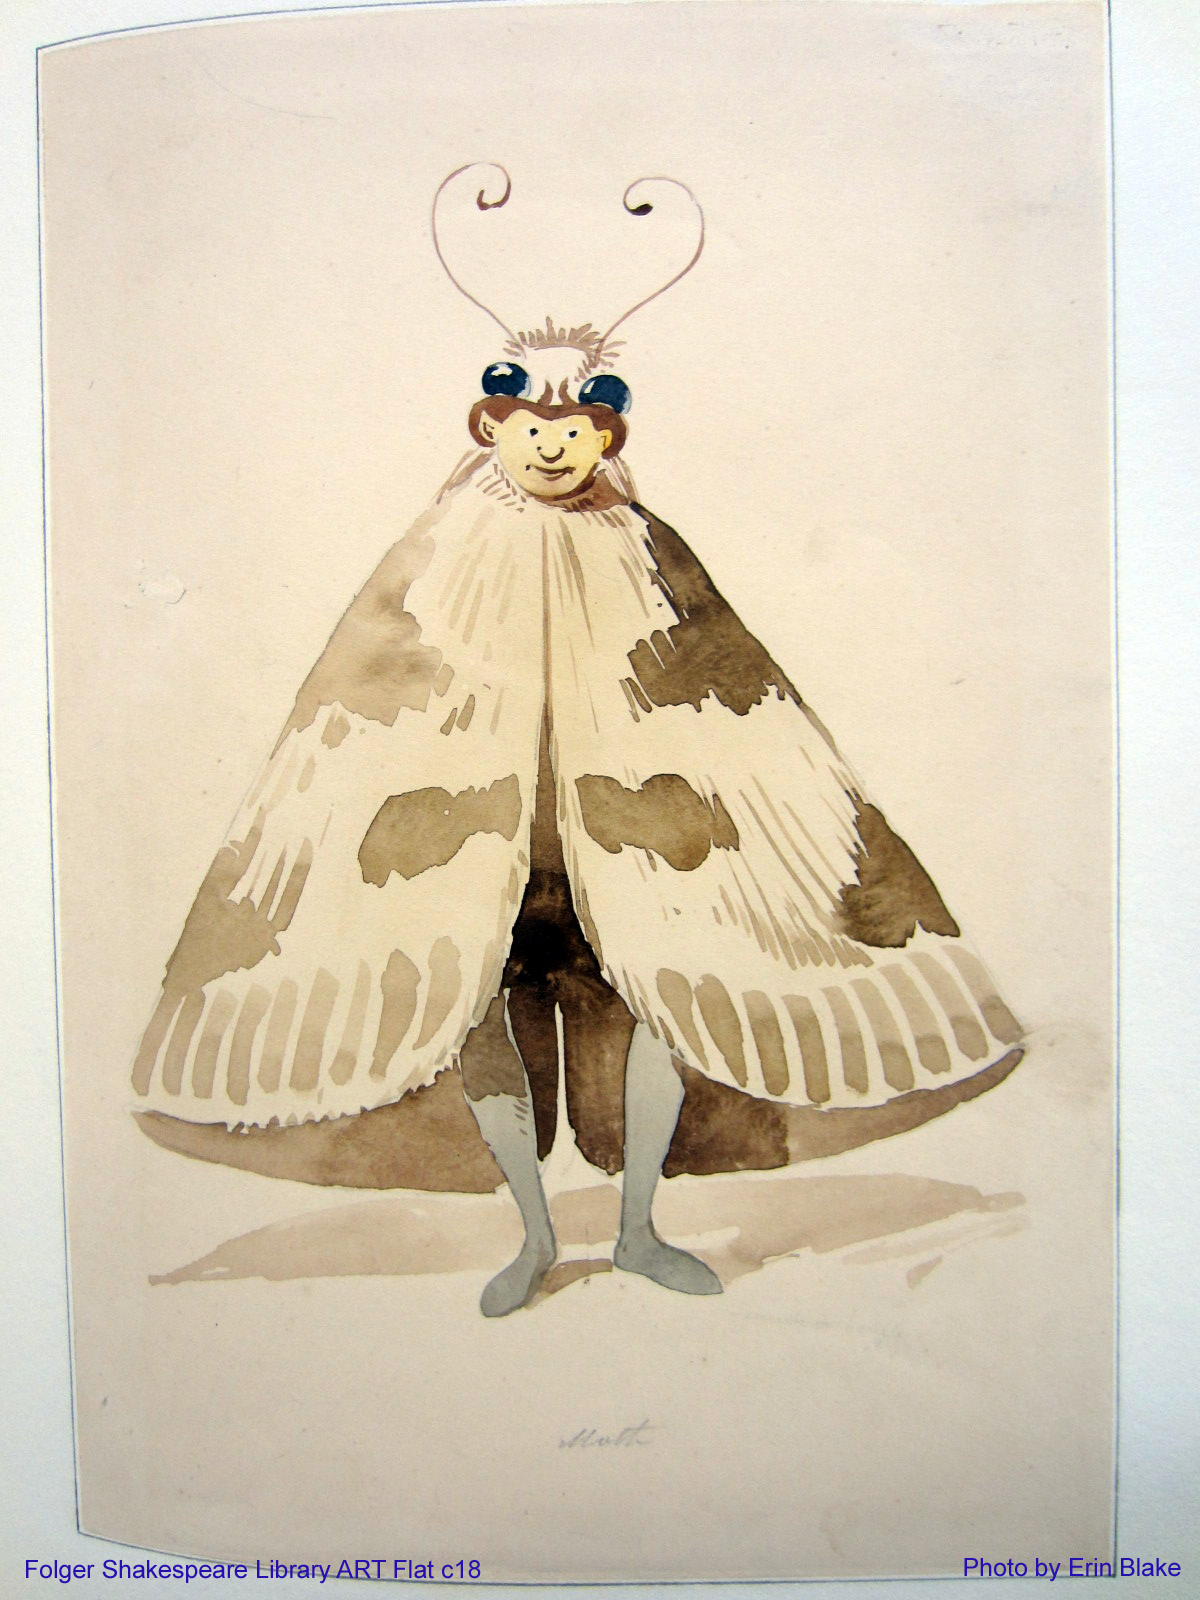 Costume design for Moth in Augustin Daly's 1888 production of A Midsummer Night's Dream